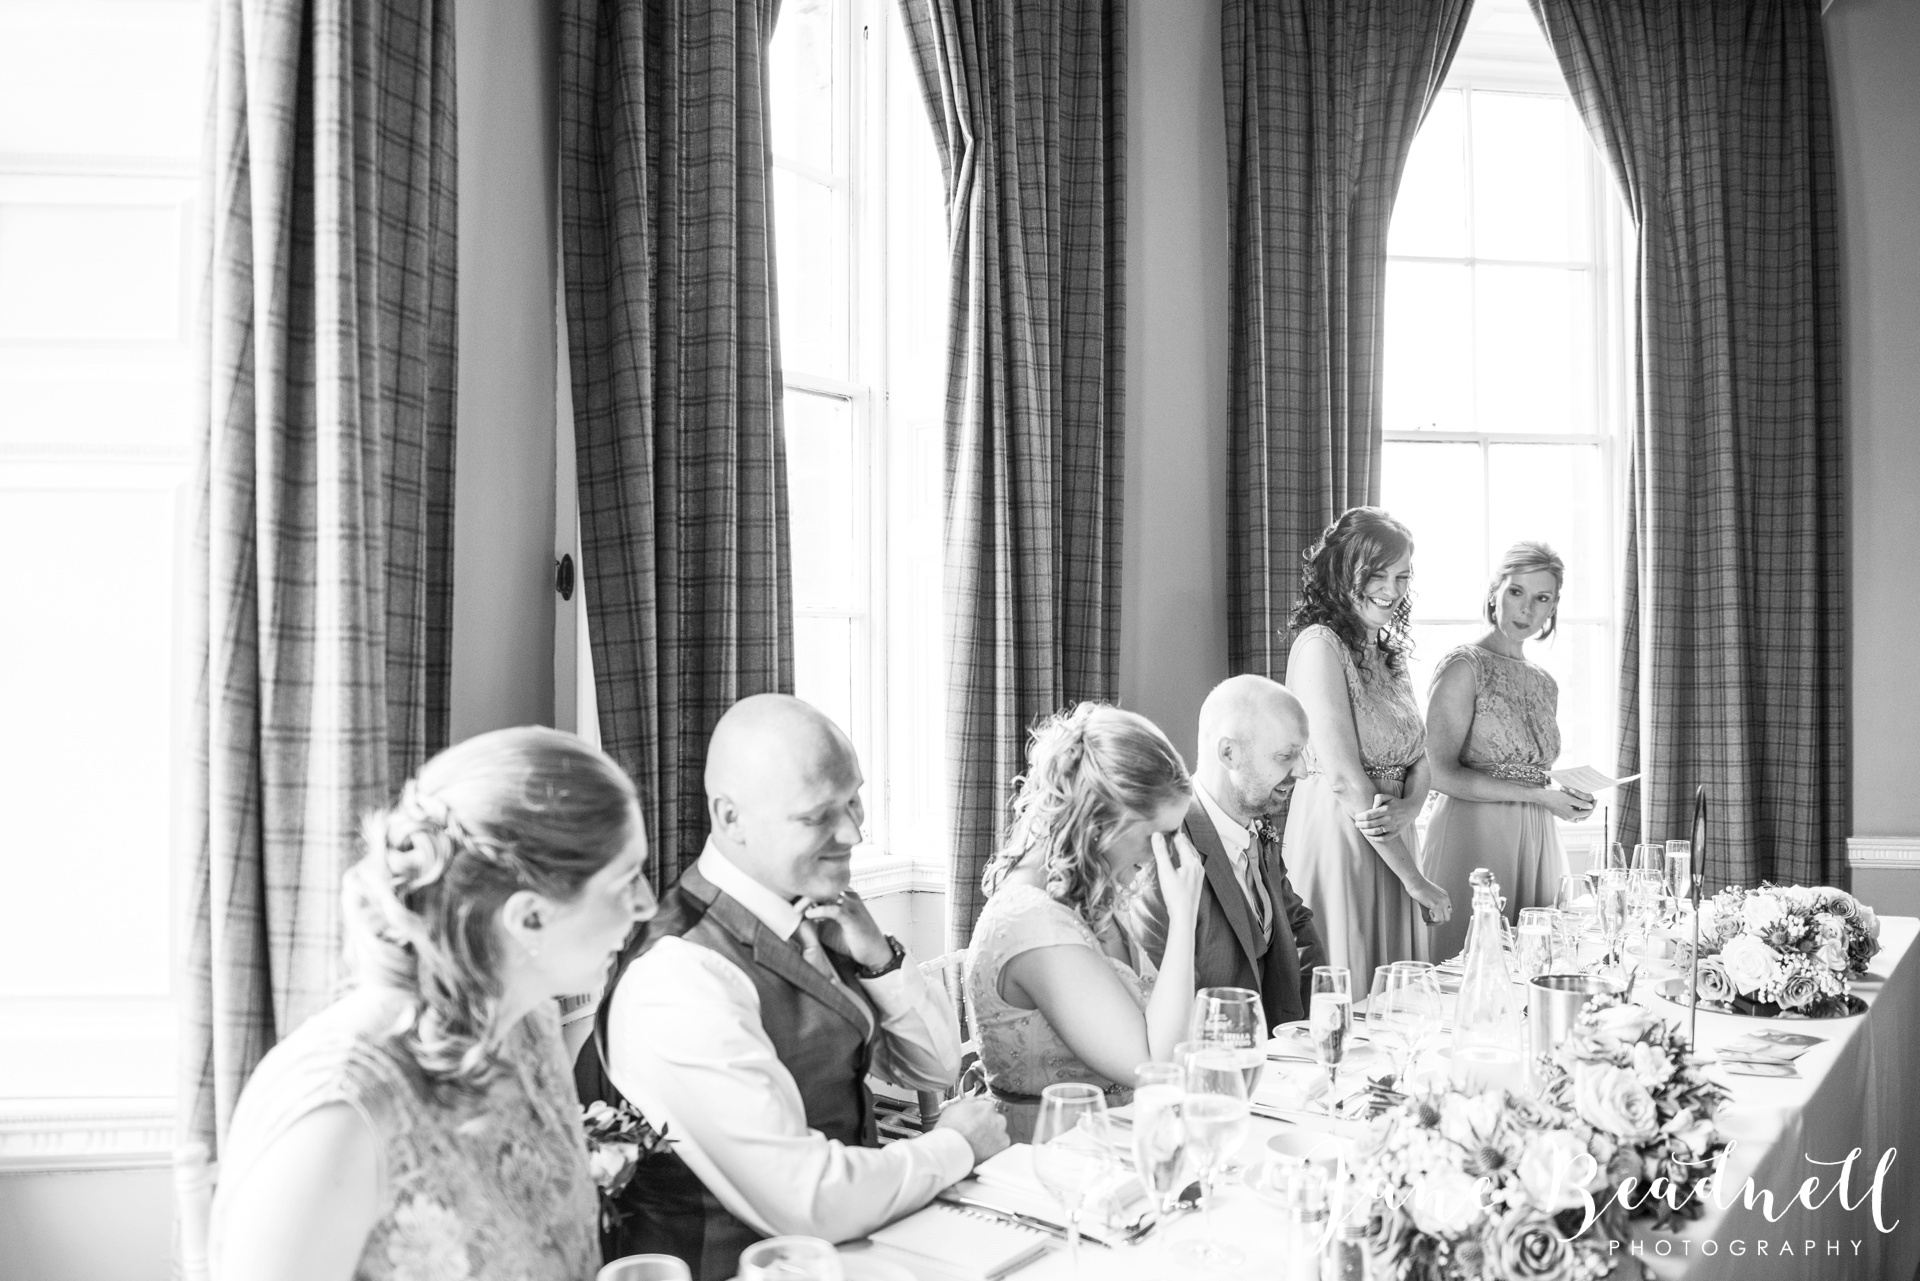 Middleton Lodge wedding photography by fine art wedding photographer Jane Beadnell_0100